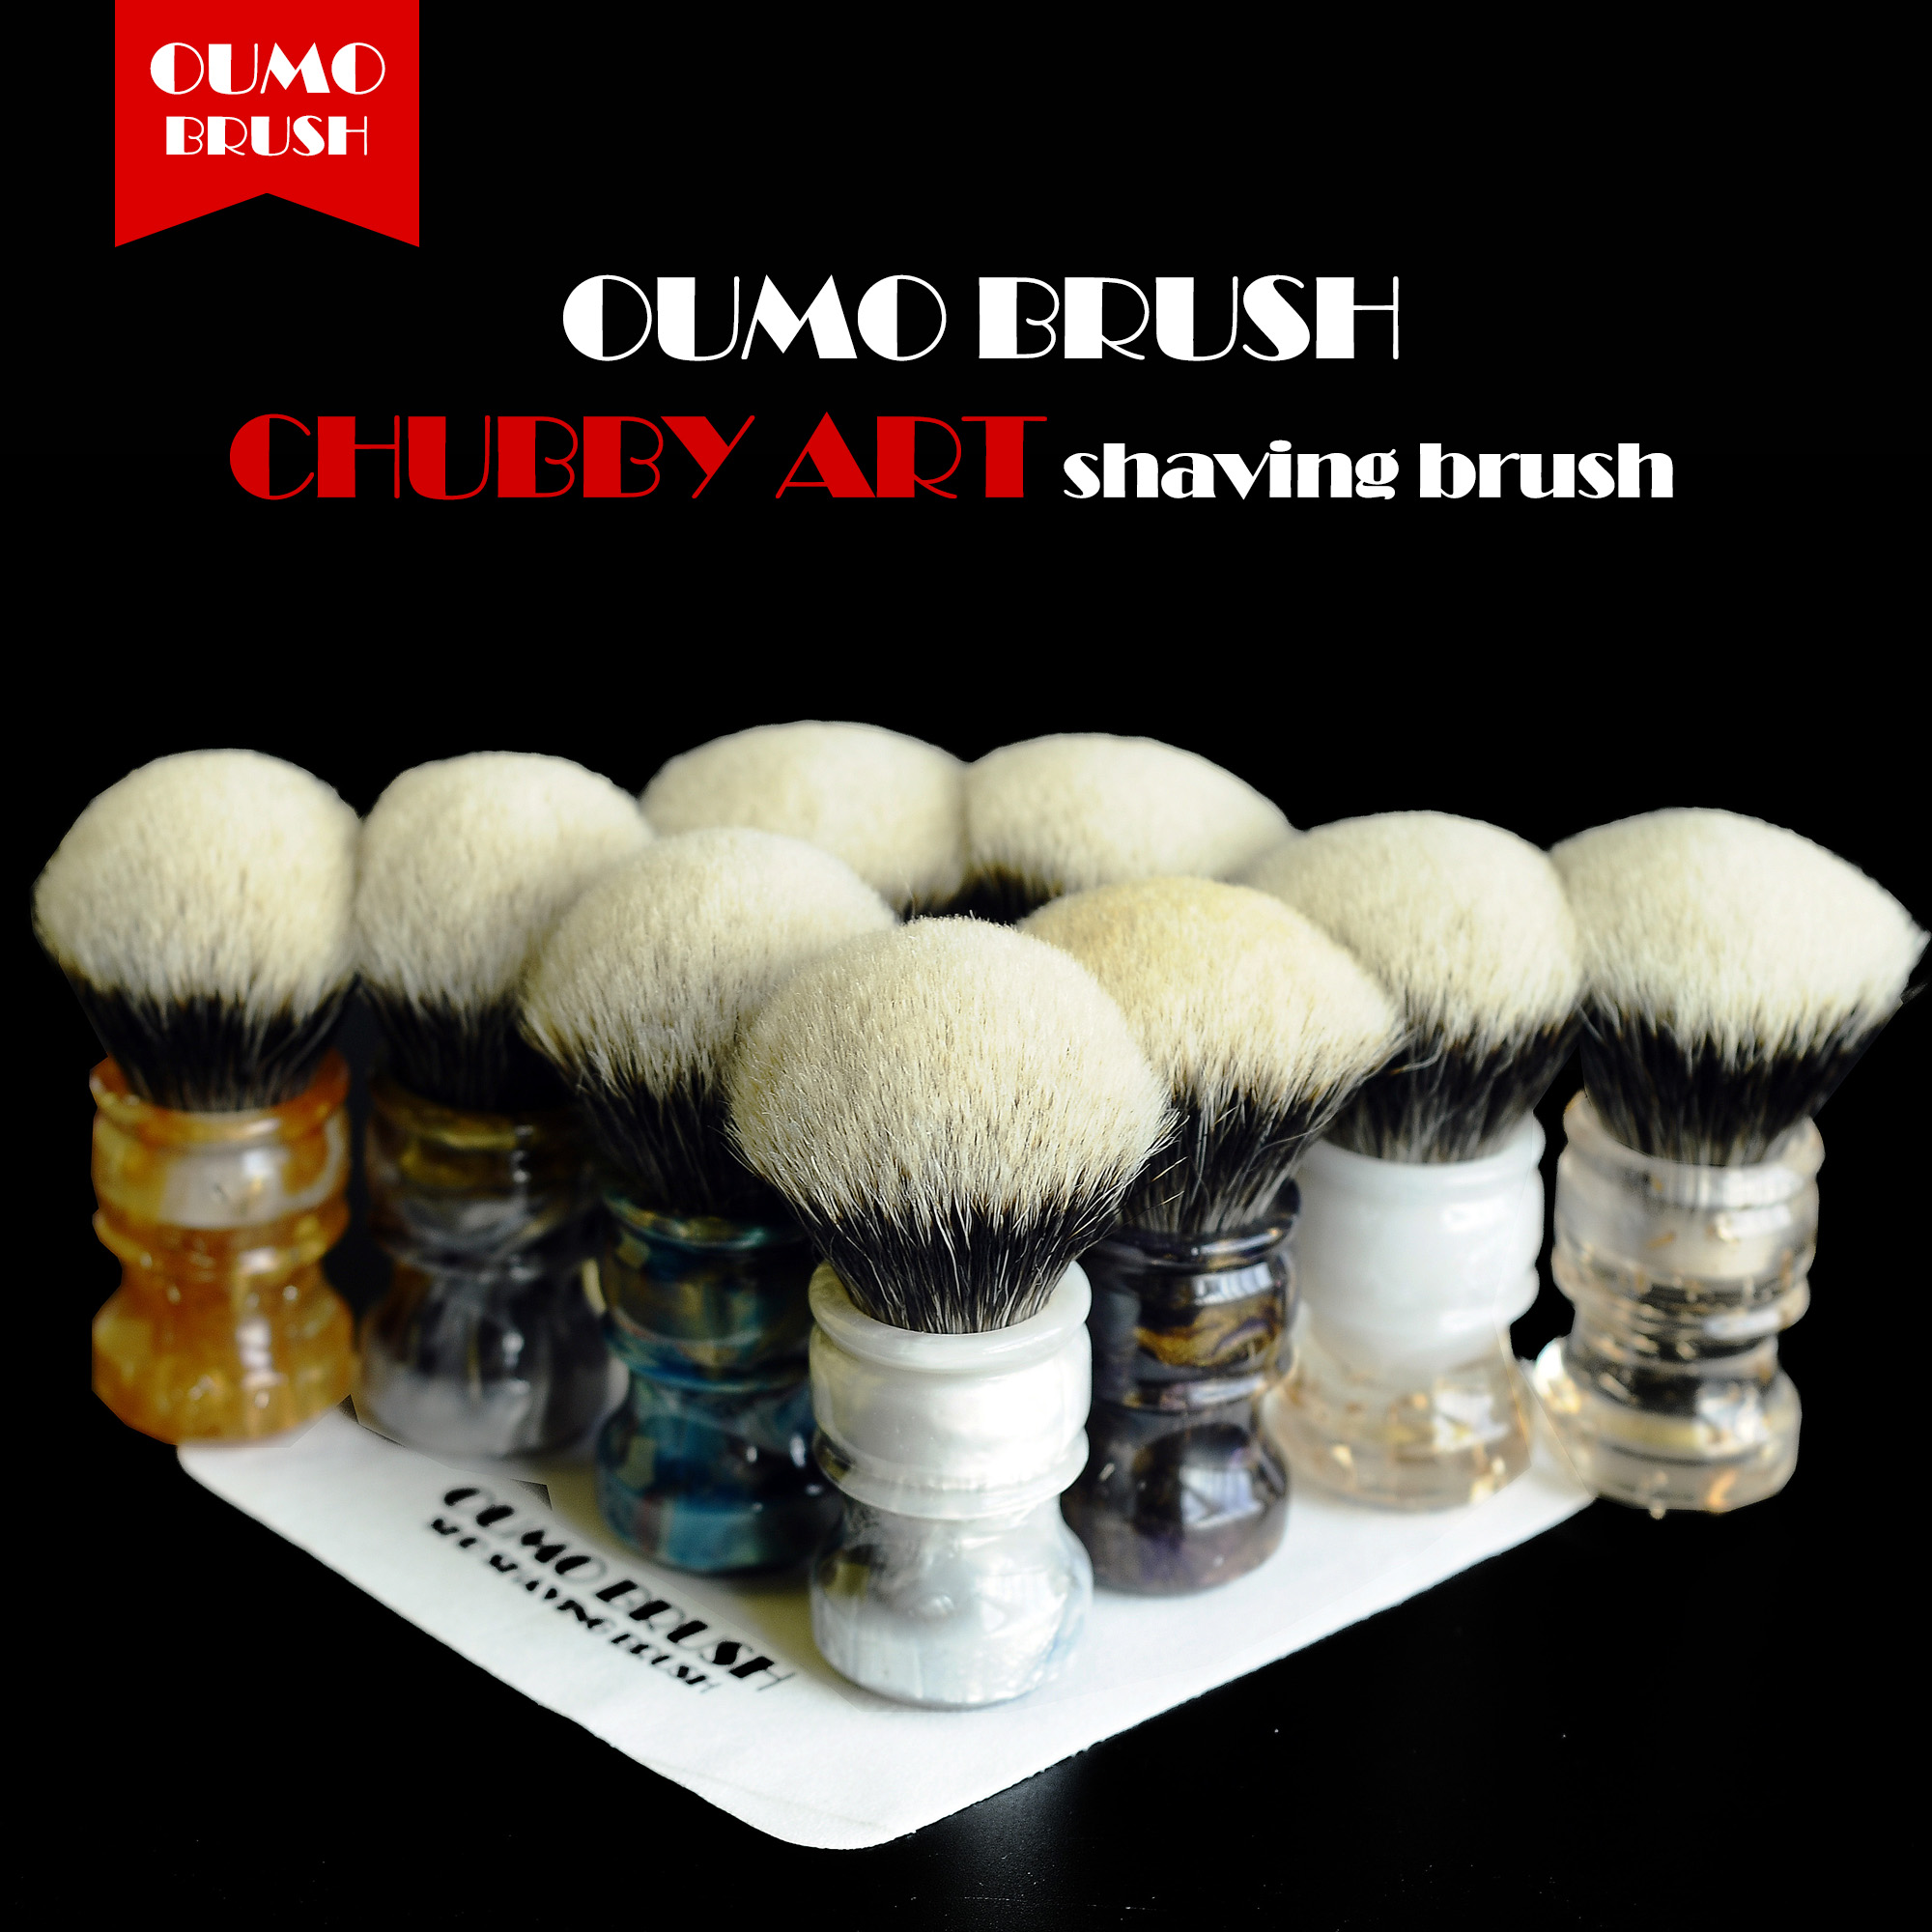 OUMO BRUSH  2019/8/1 CHUBBY  Art shaving brush with SHD bulb Manchuria badger knot gel city 26MM-in Shaving Brush from Beauty & Health